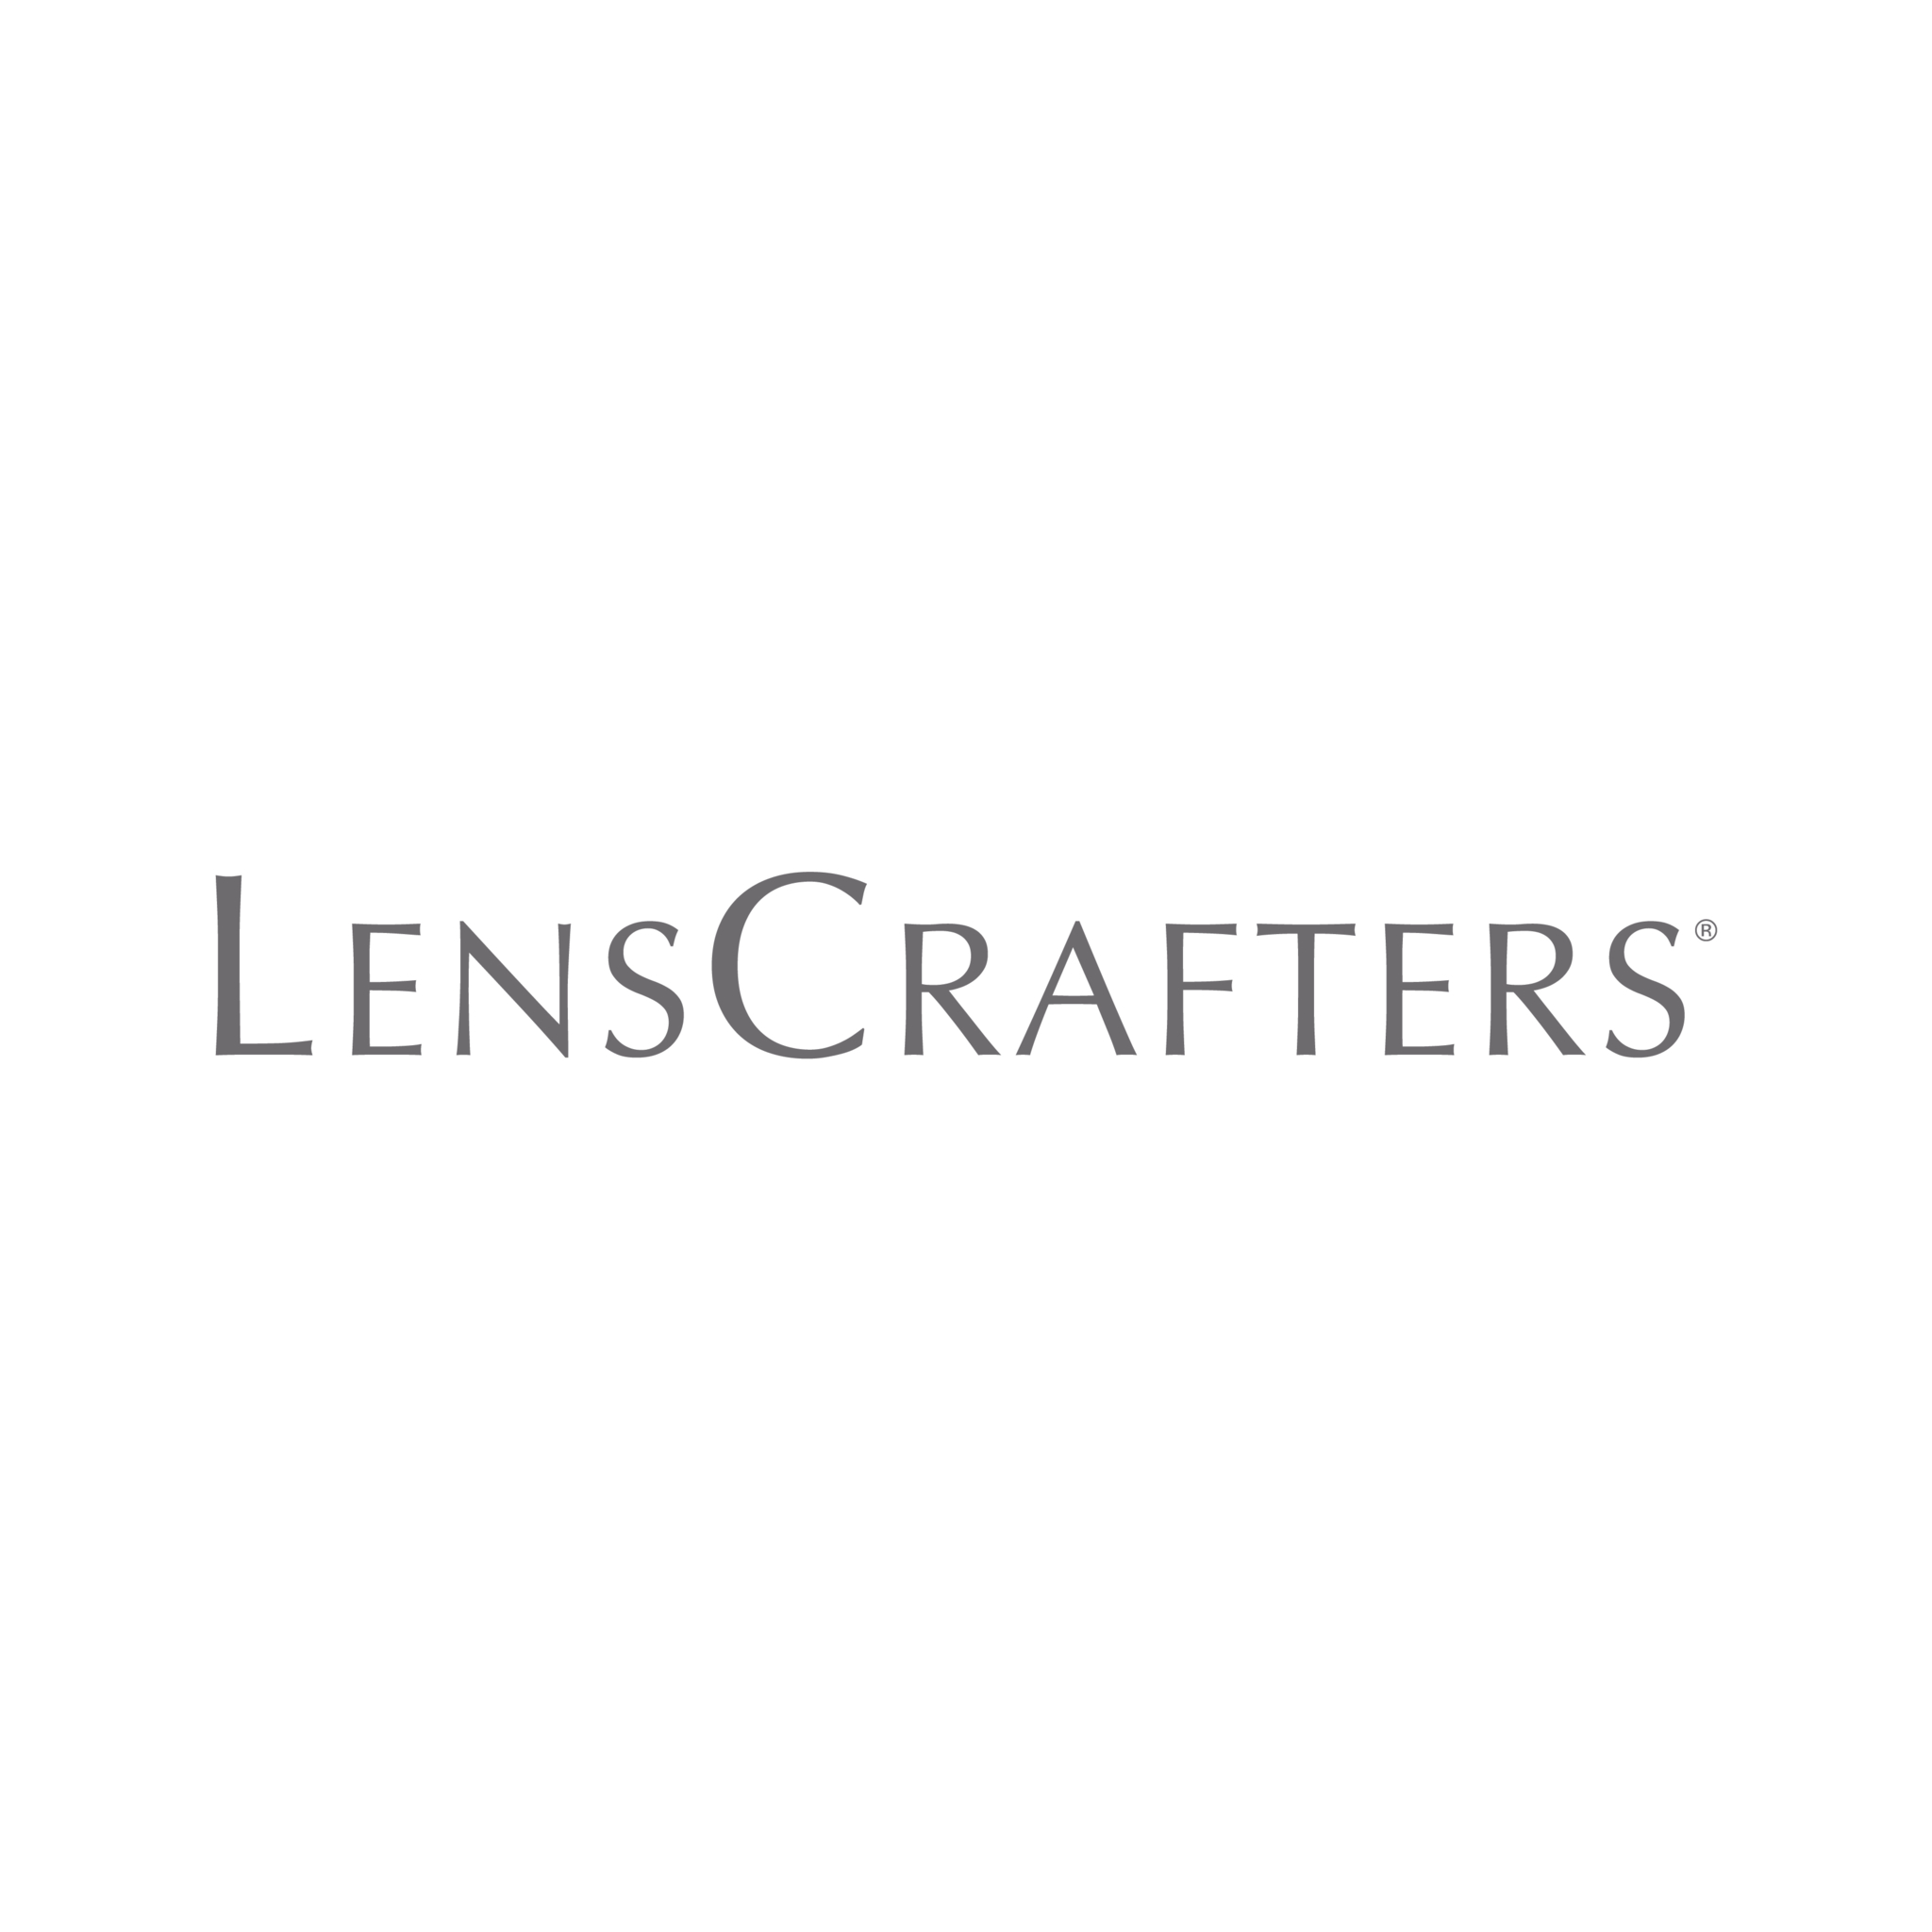 LensCrafters - Vision & Eye Care